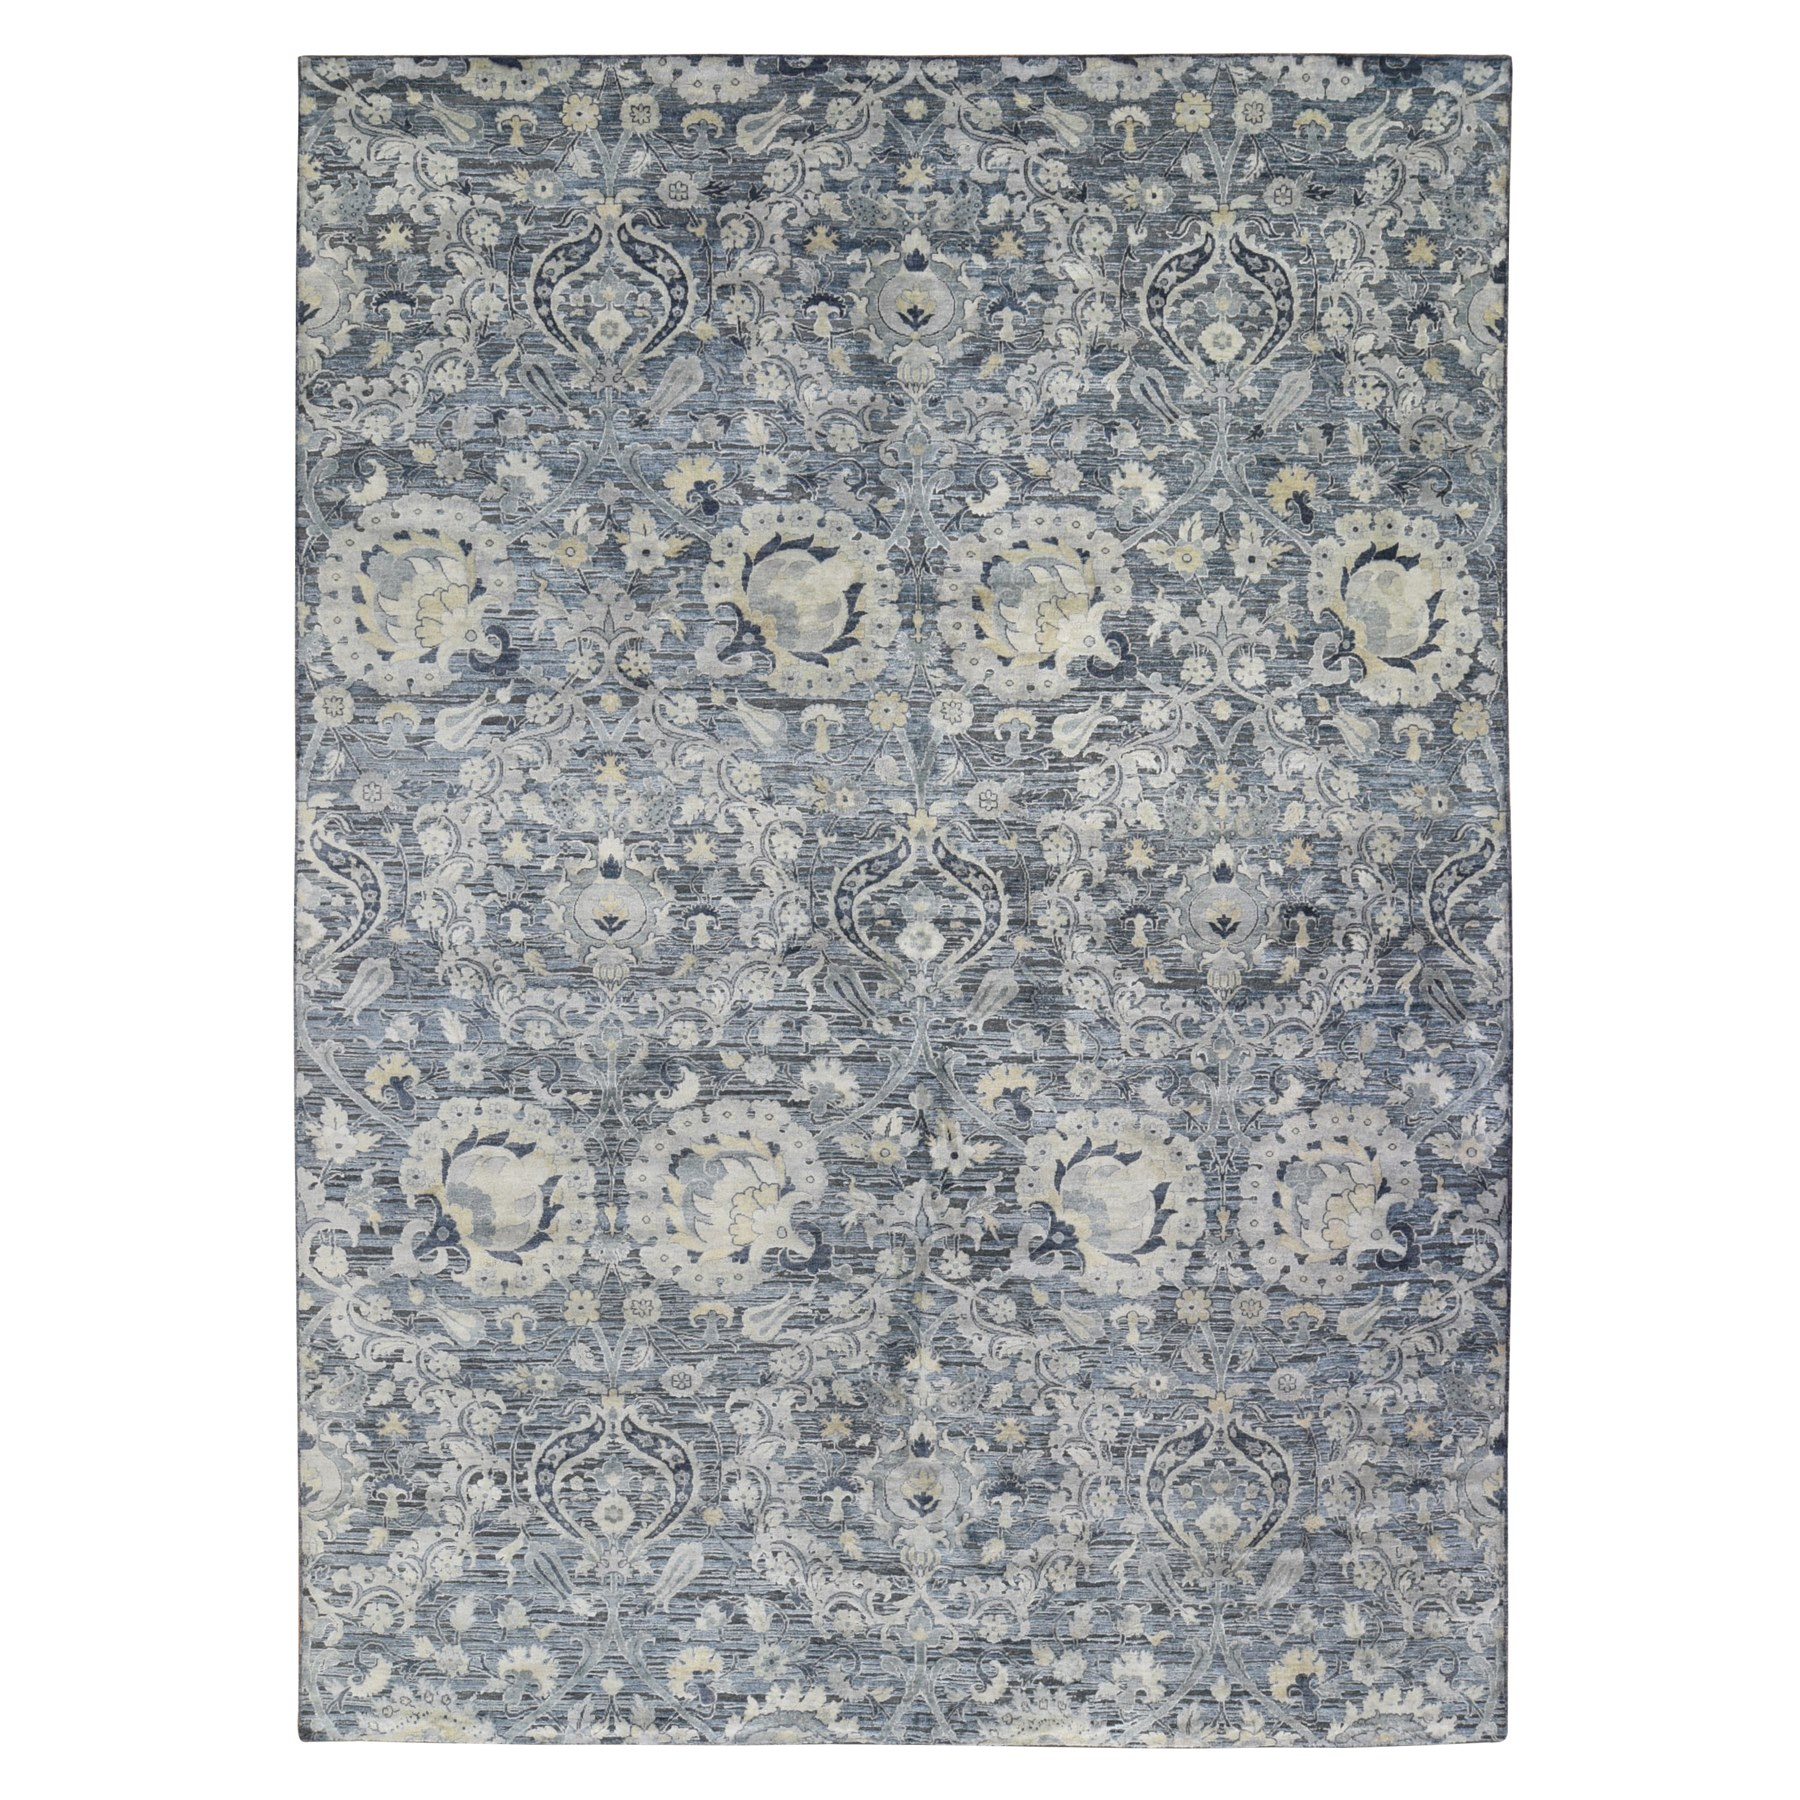 Wool and Real Silk Collection Hand Knotted Blue Rug No: 1118742